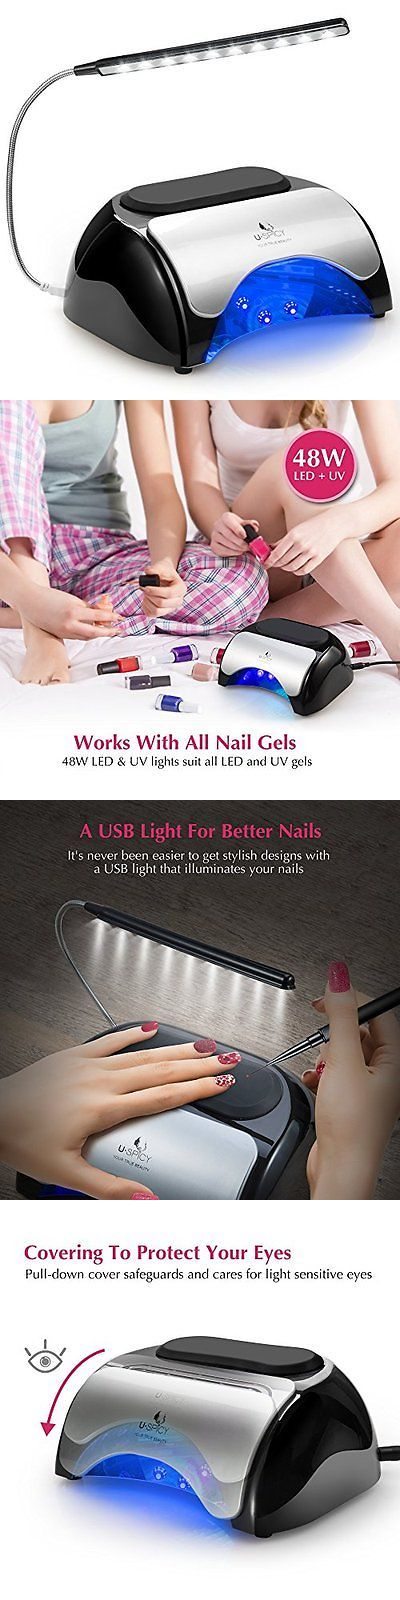 Nail Dryers and UV LED Lamps: Led Uv Nail Dryer Uspicy 48W Led Uv Nail Lamp For Gel Based Polishes With Cover, -> BUY IT NOW ONLY: $48.19 on eBay!